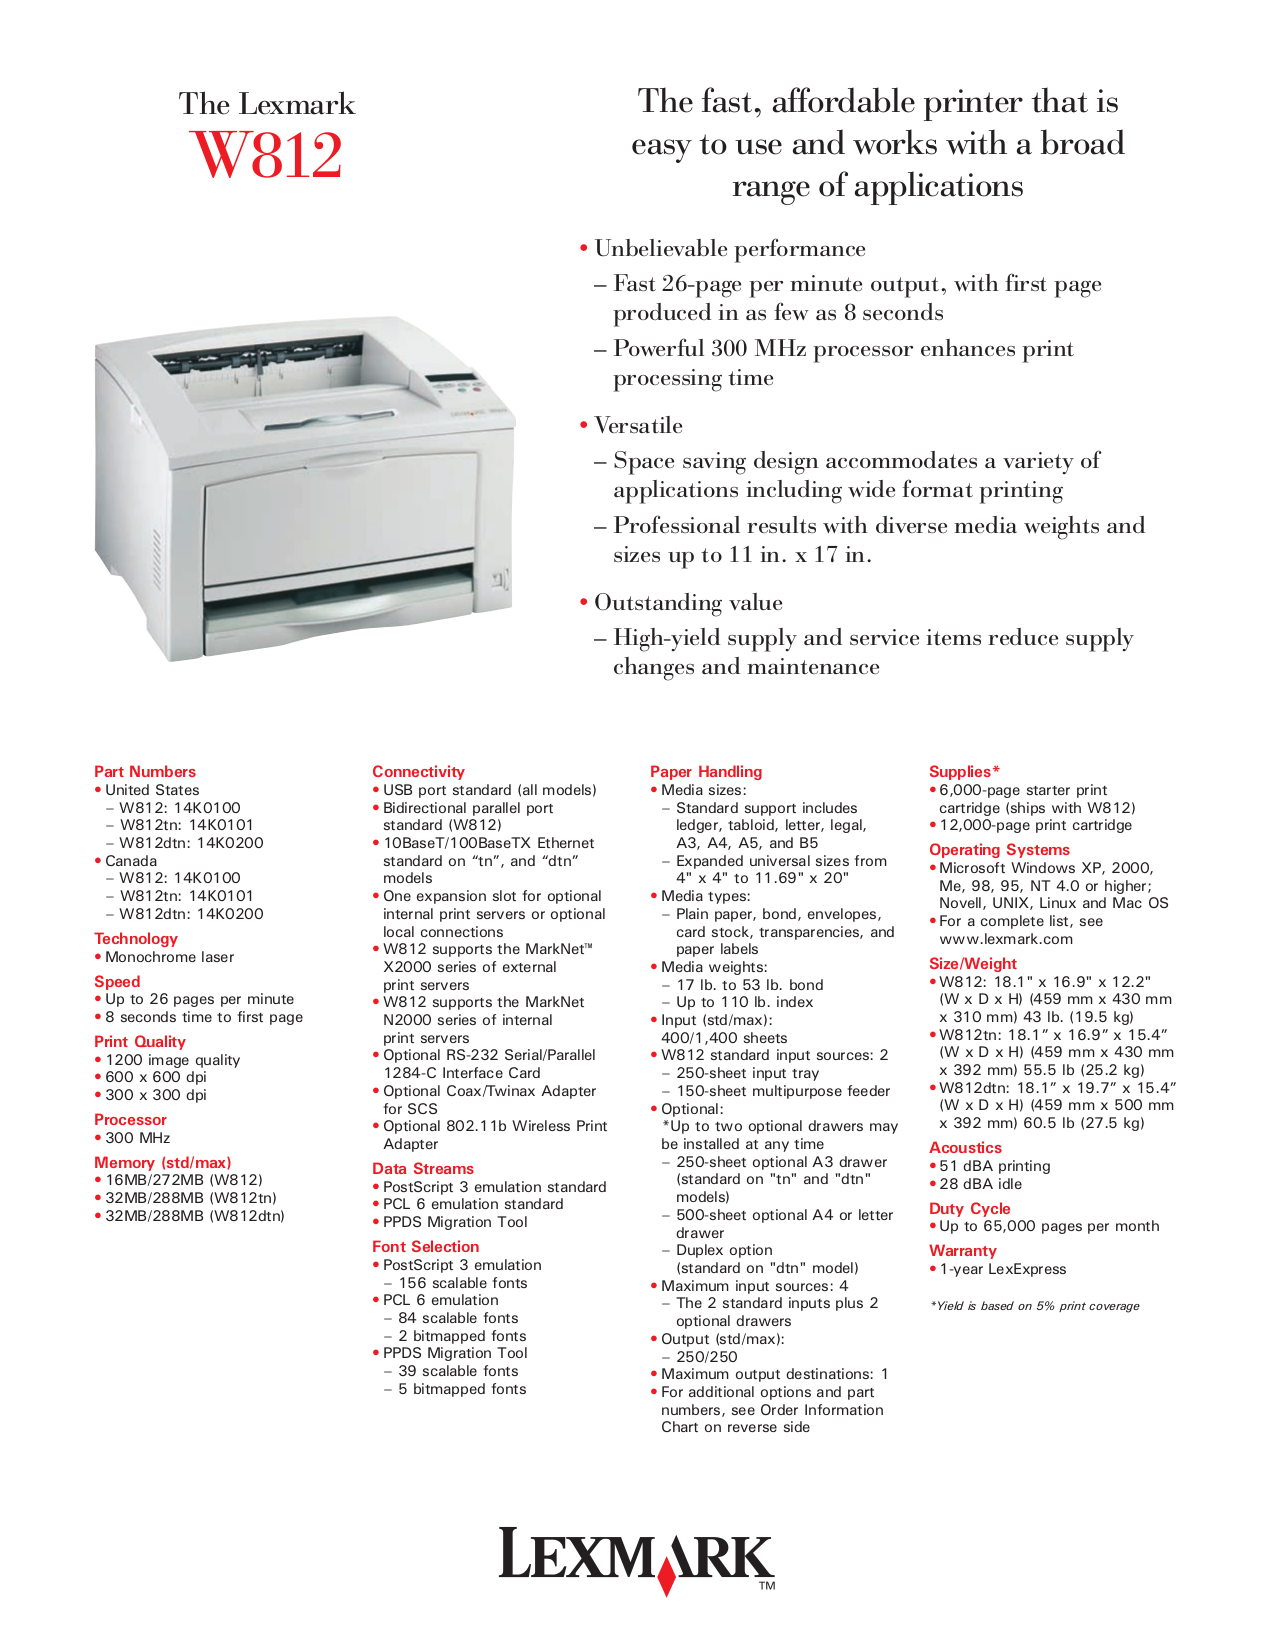 pdf for Lexmark Printer W812 manual